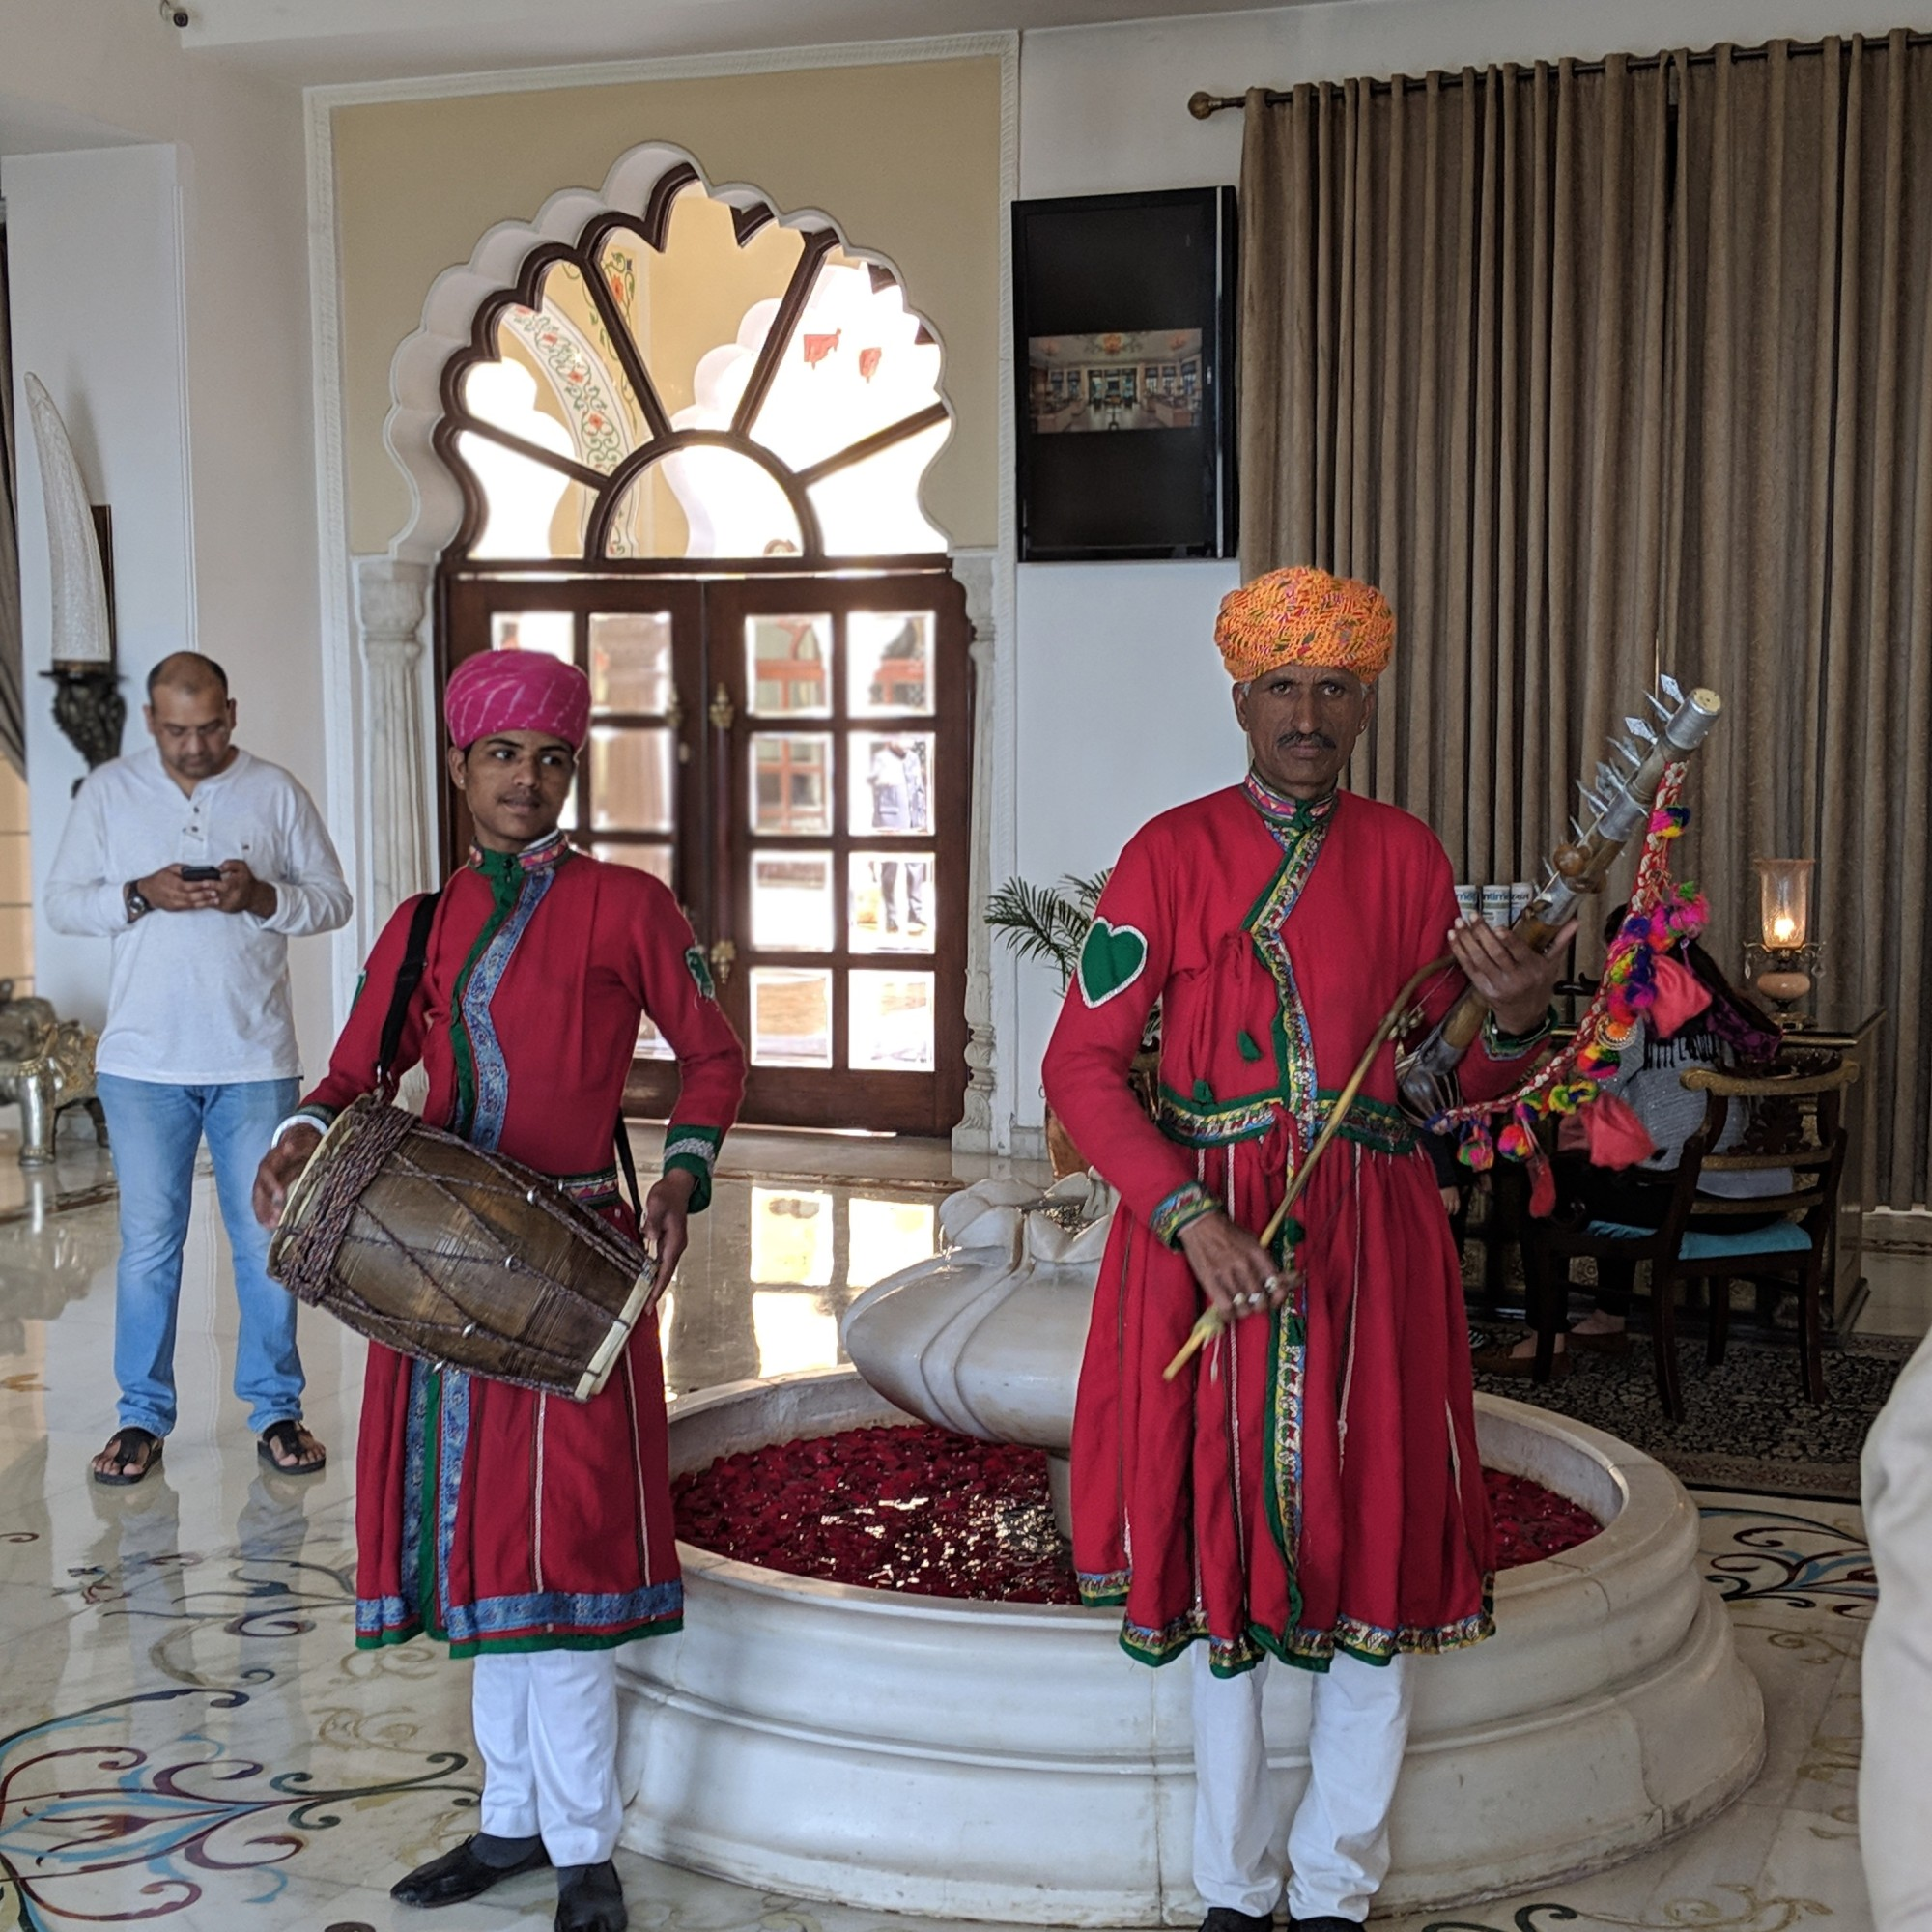 Welcome with folk songs at Noor Mahal